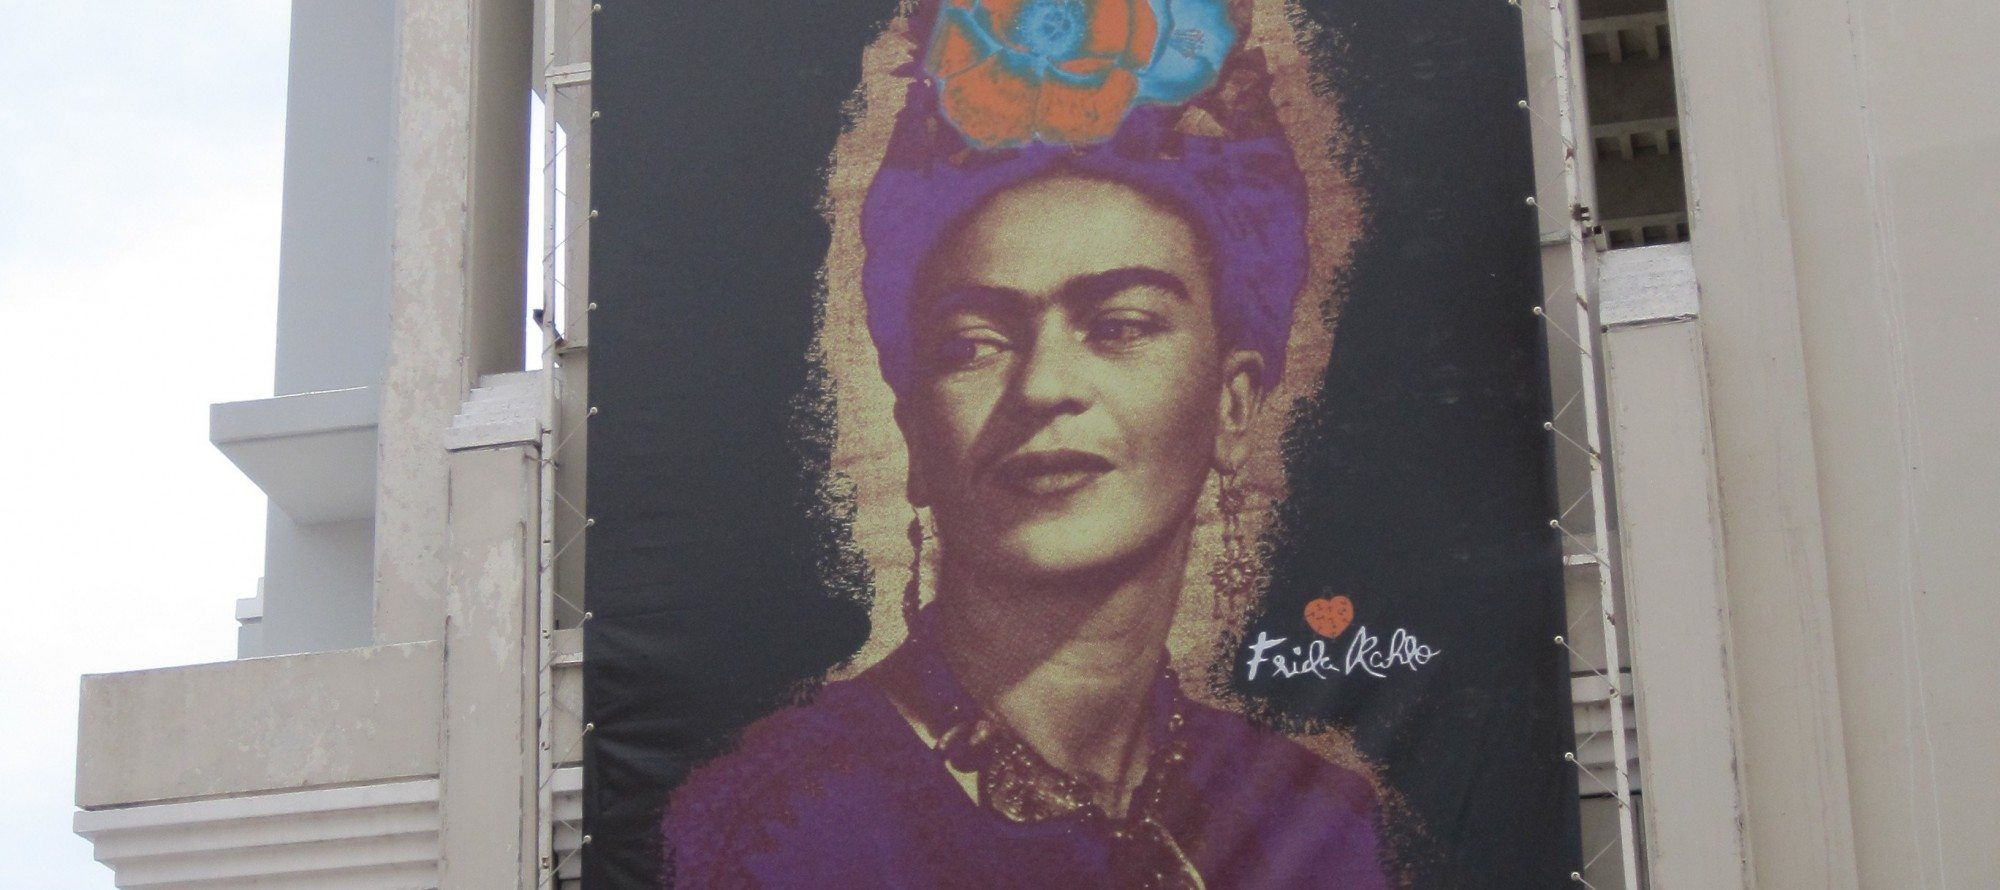 ROADTRIP ALERT: 2012 to see two Frida Kahlo blockbusters within driving distance of Ottawa!